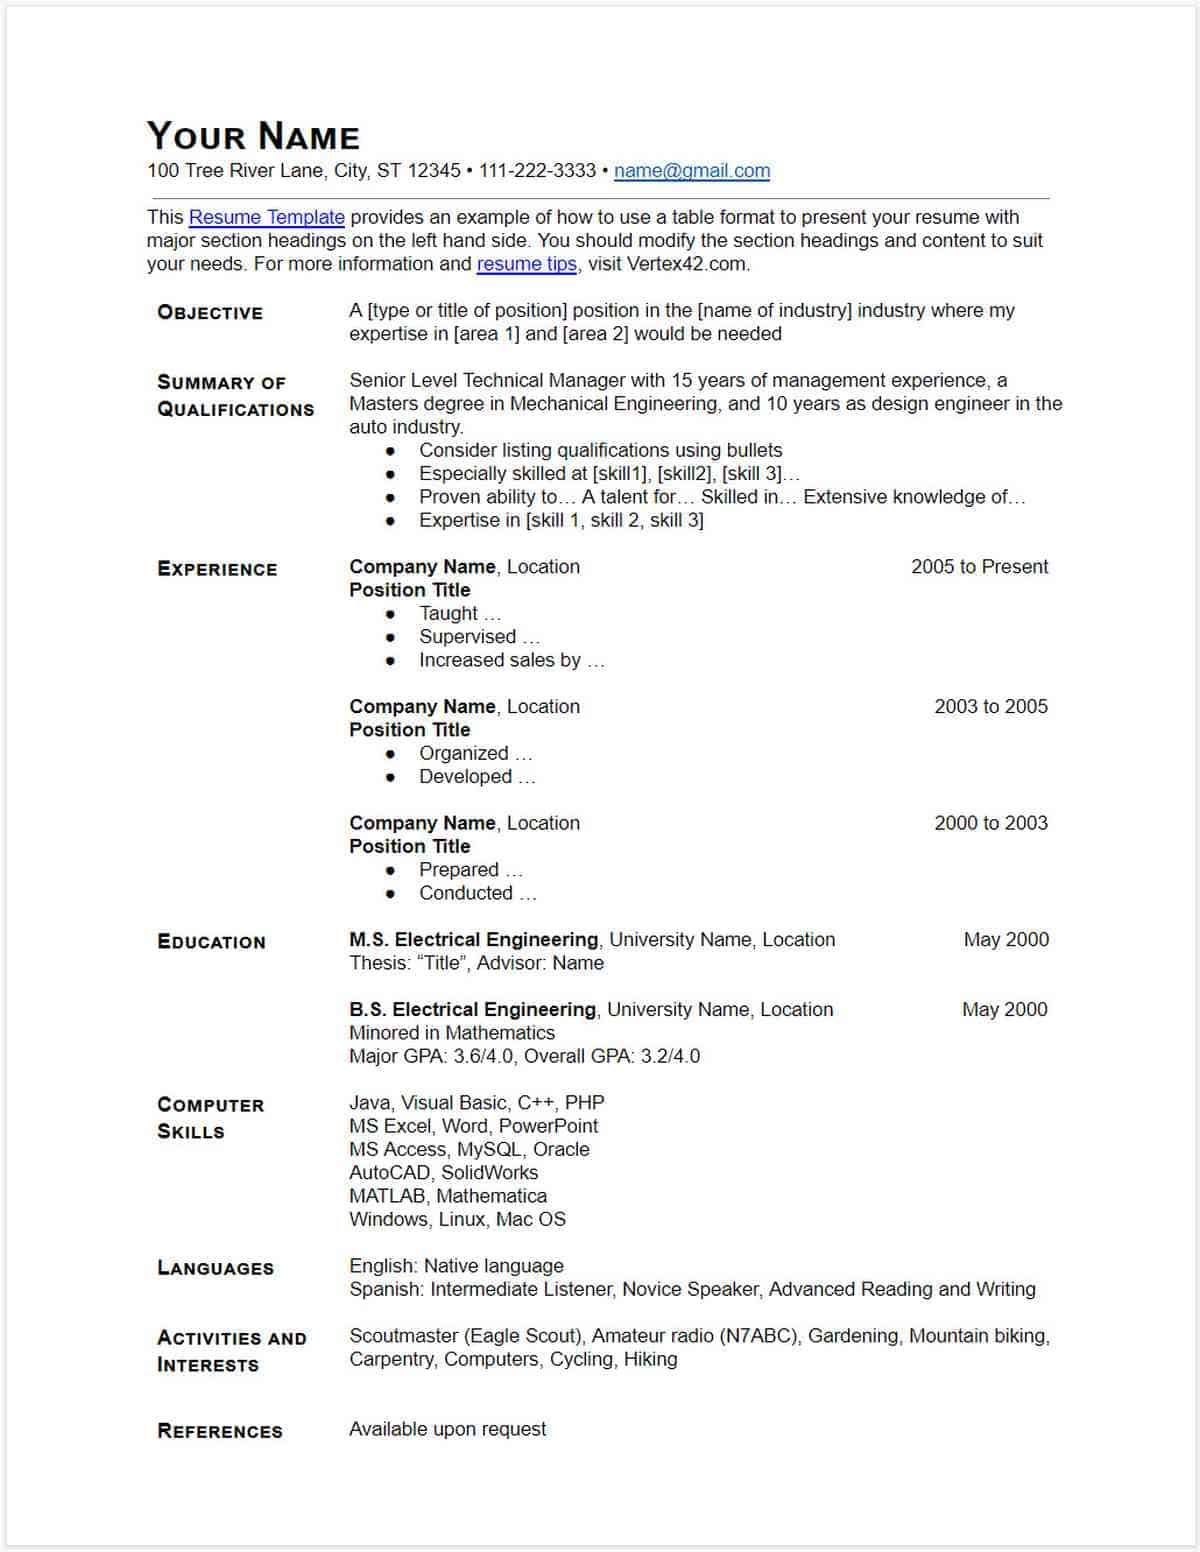 downloadable resume template 30 google docs modern cv pdf attractive templates free download clinical research format for freshers